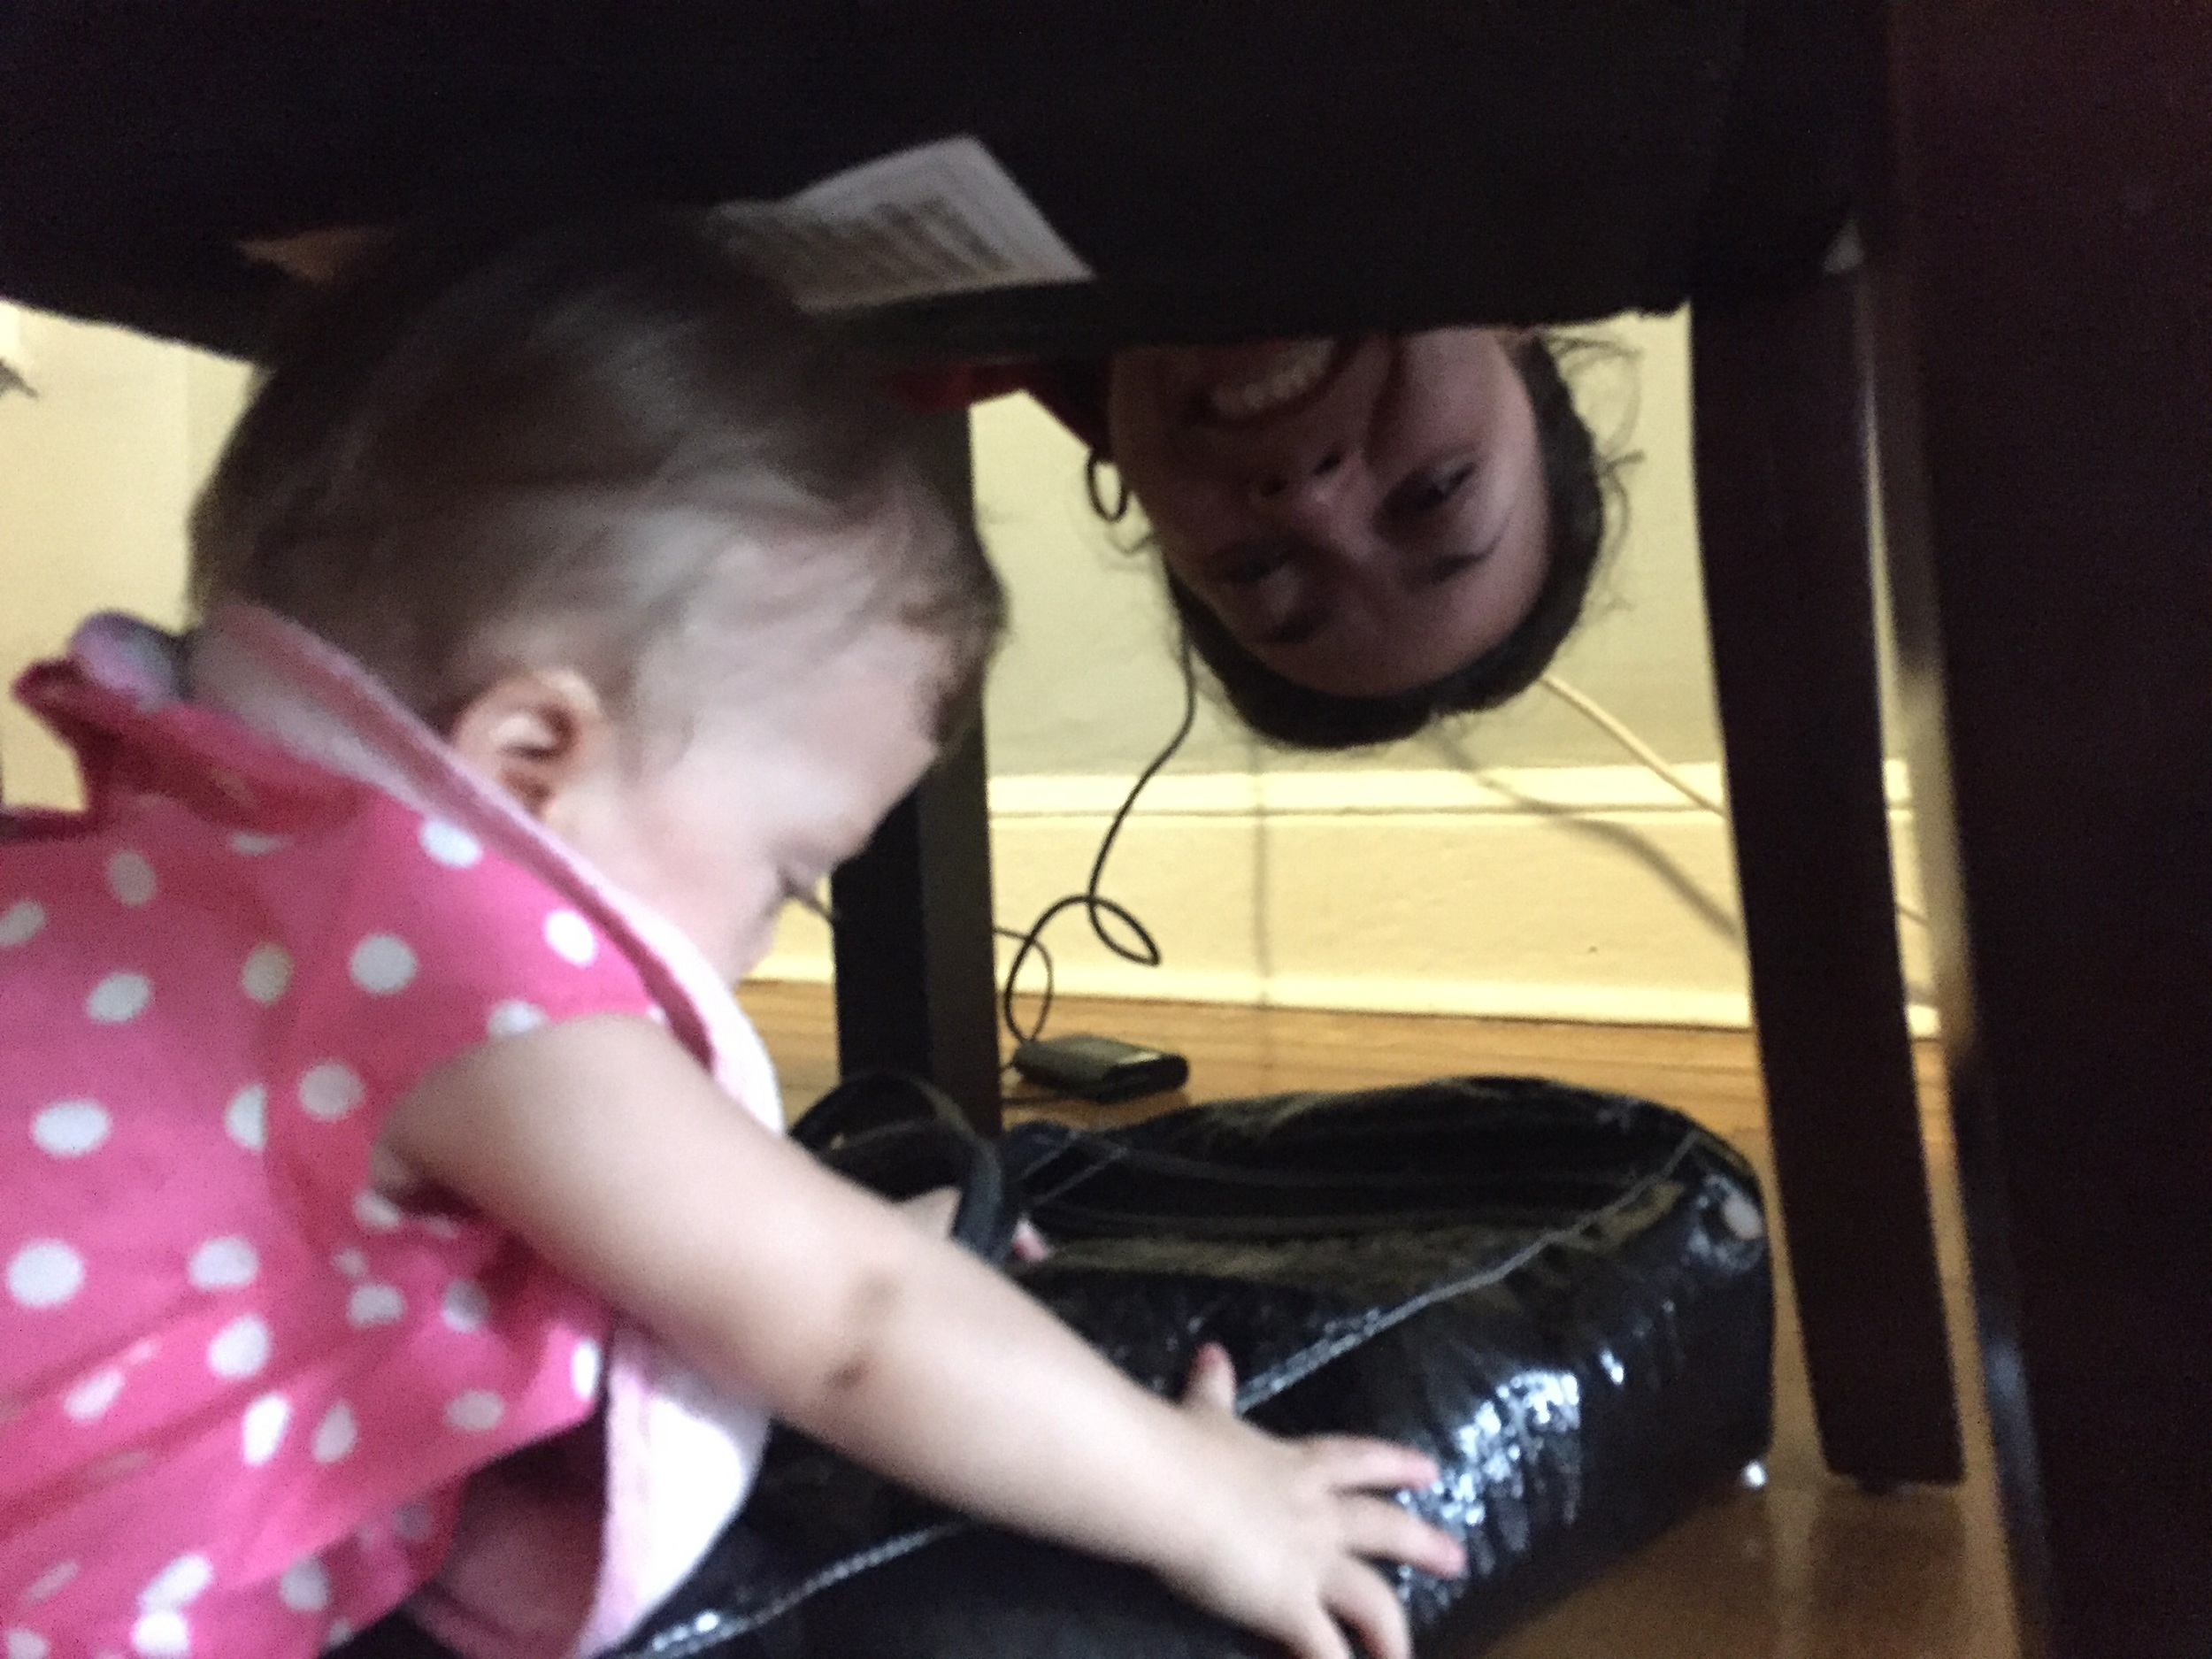 Crawled under the chair to get mommy's purse, almost made it without being caught.